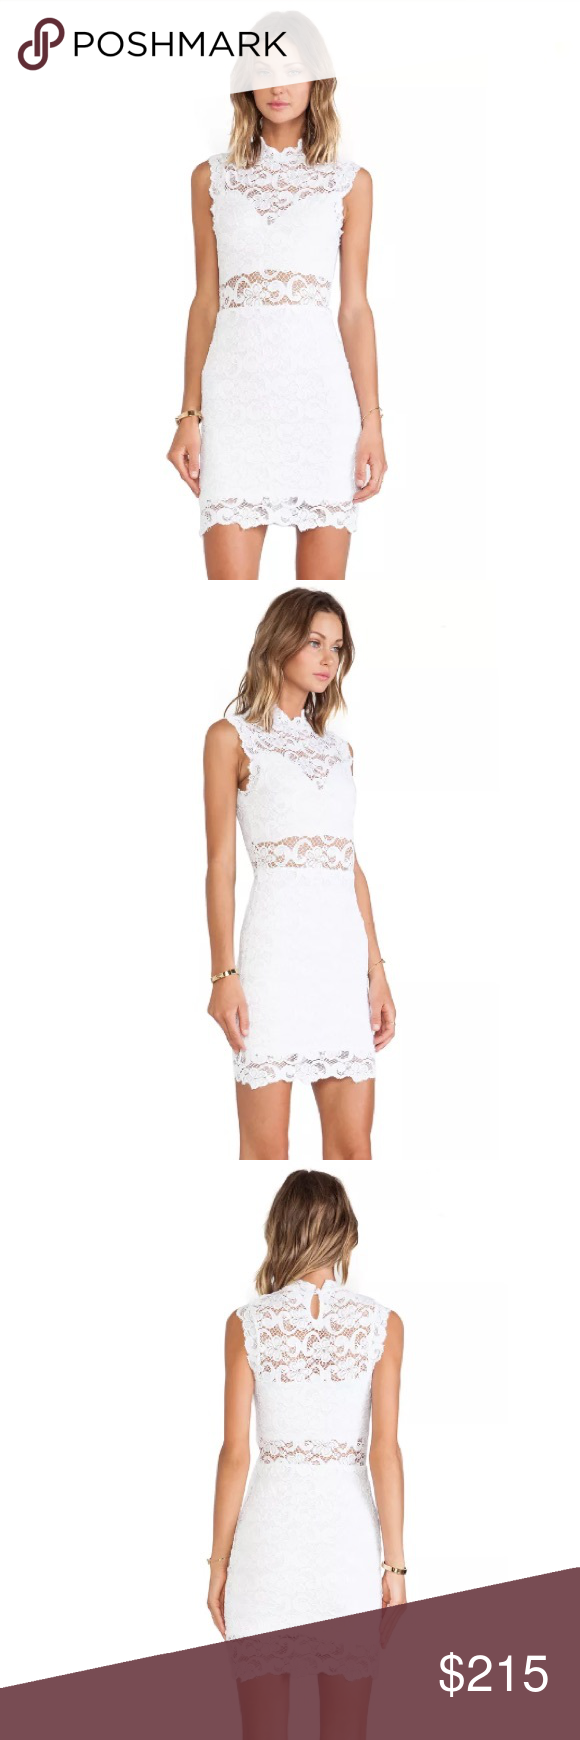 Nightcap Dixie White Lace Cutout Dress Cotton blend 🔹Fully lined 🔹Lace fabric 🔹Back keyhole with button closure🔹 Original price - $297 🔹New with tags 🔹Size 3 Nightcap Dresses Mini